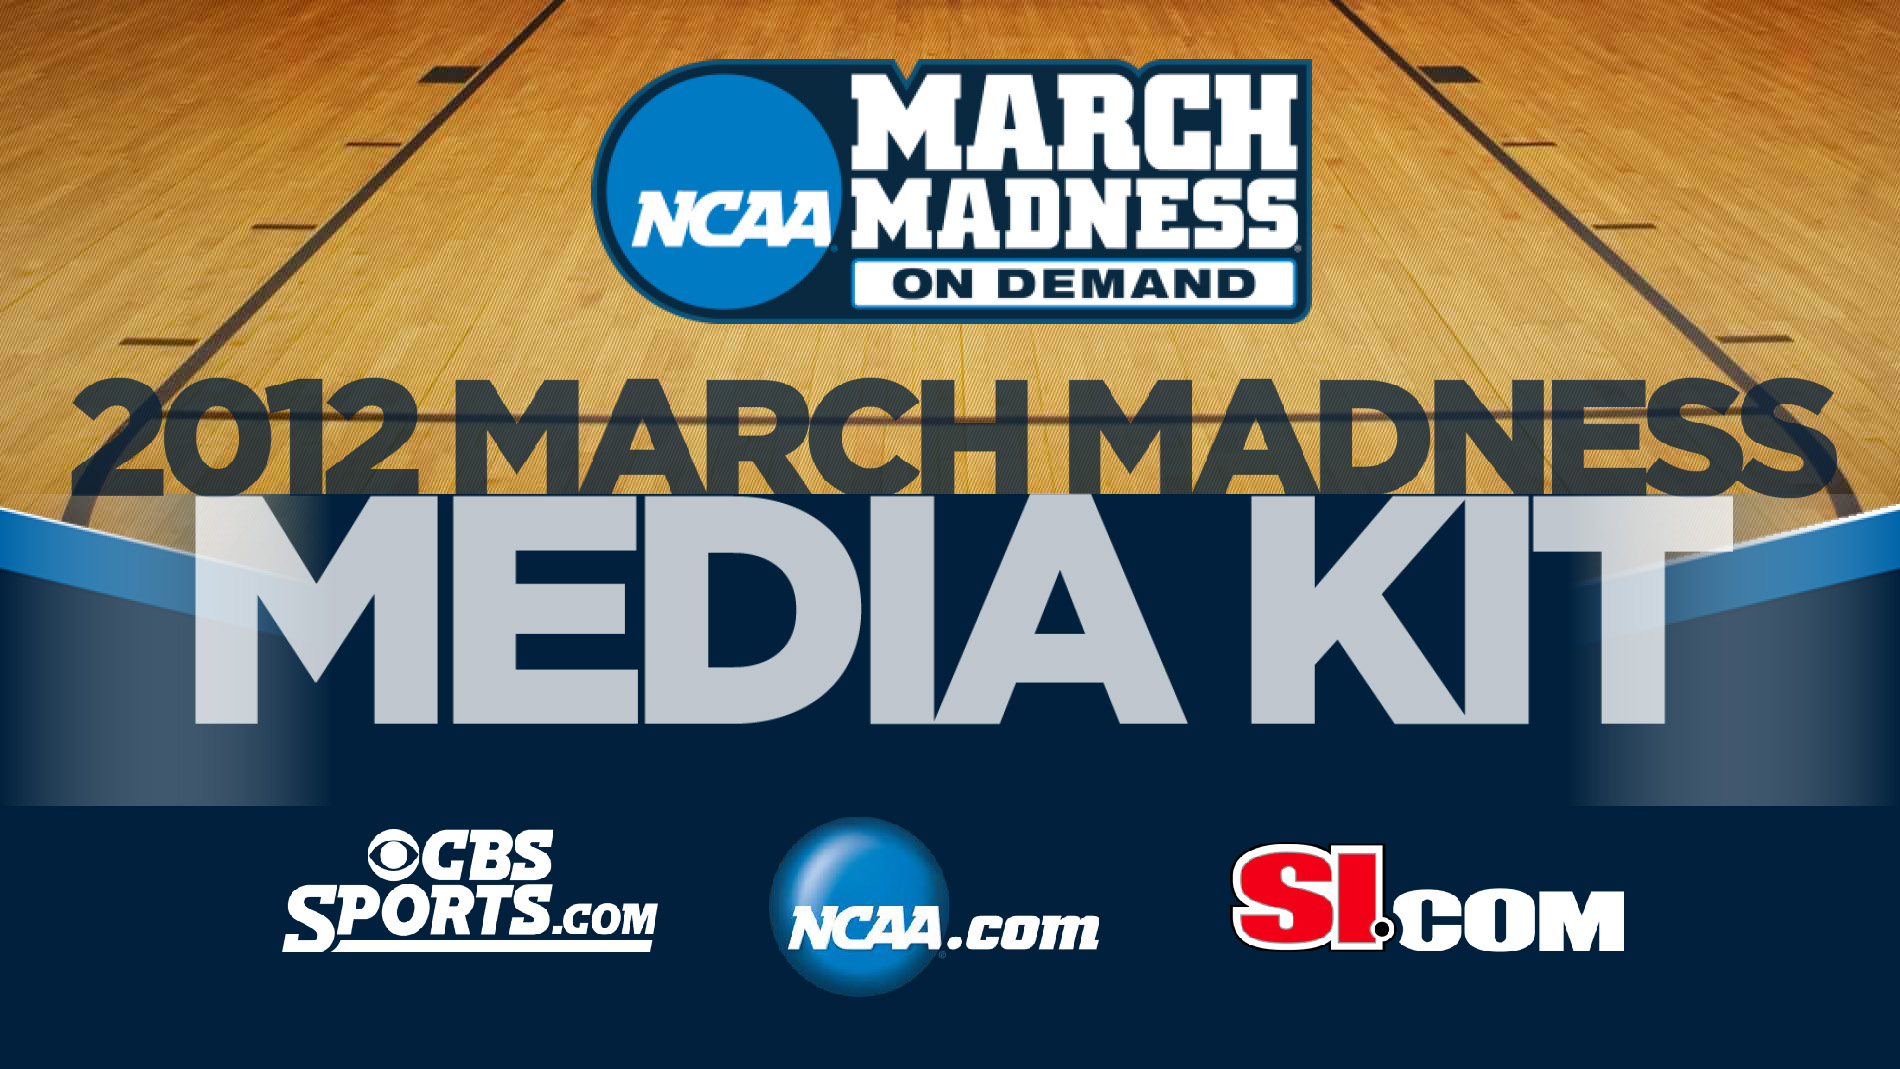 march madness powerpoint template 350 x 349 79 kb jpeg march madness ...